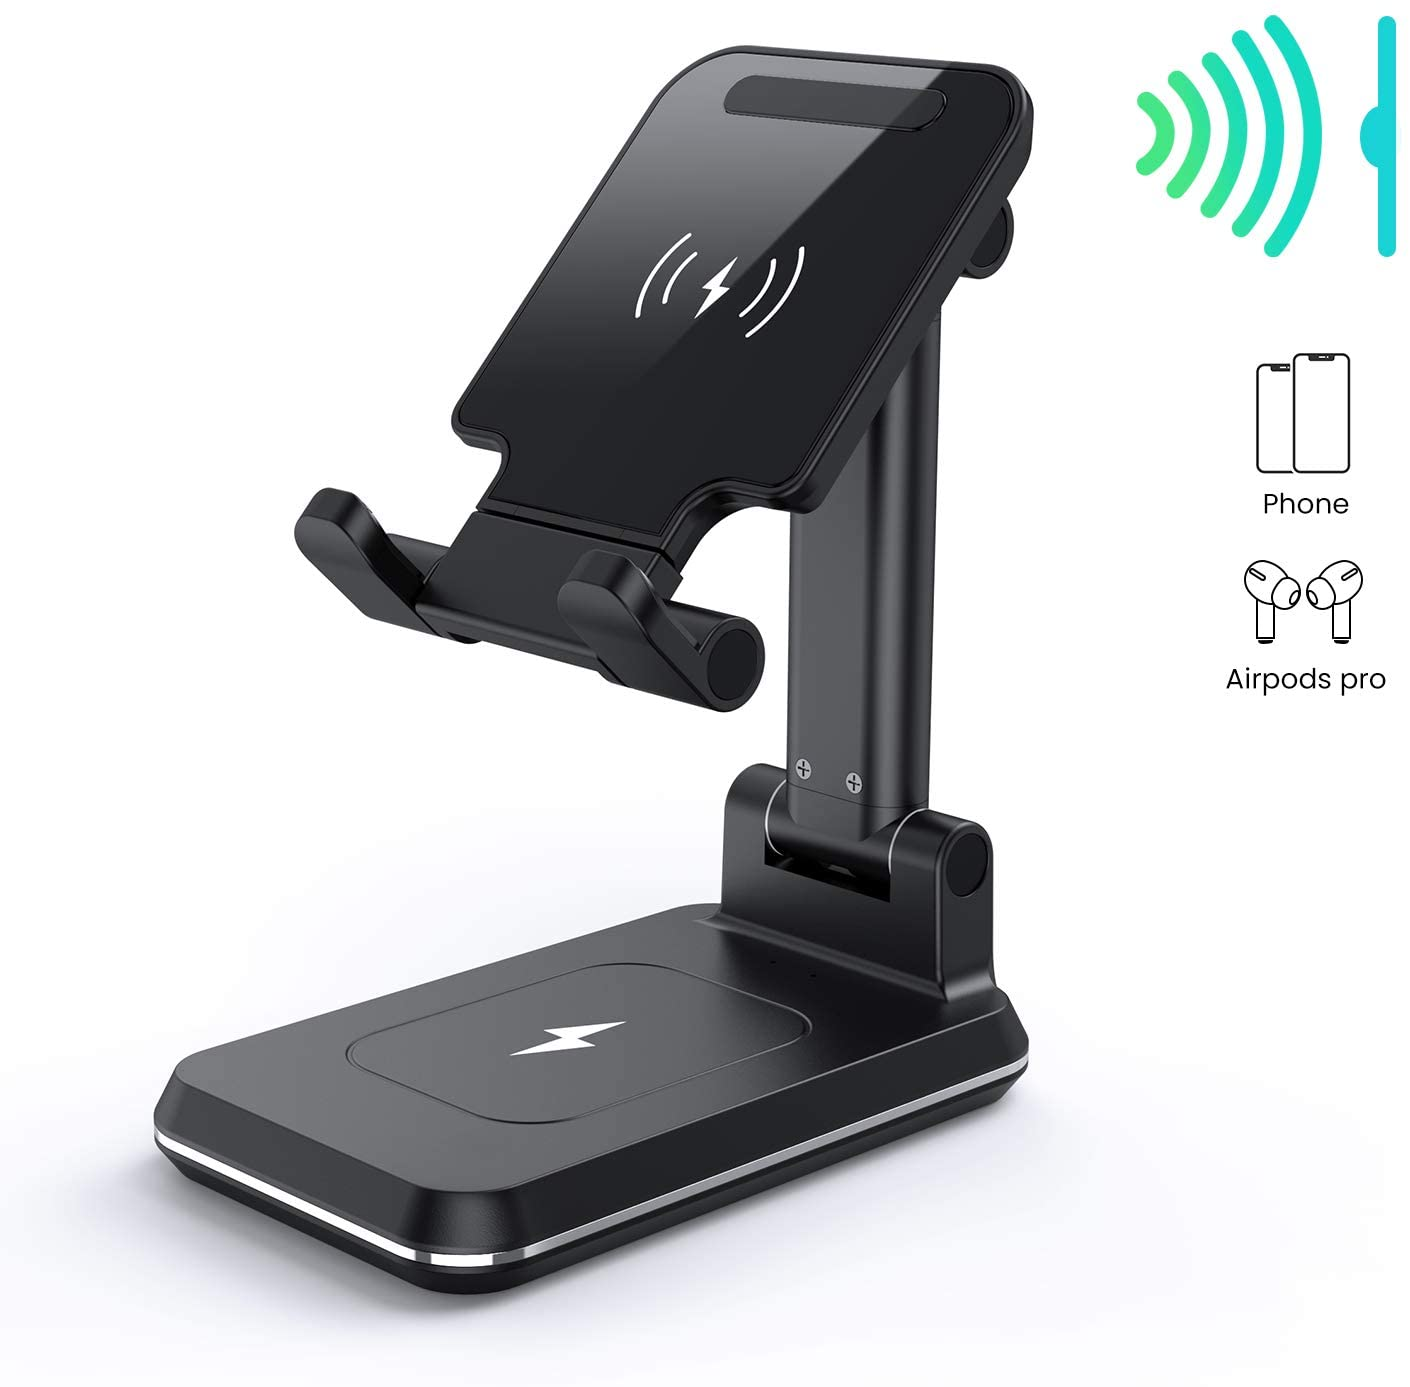 MEISO Wireless Charging Cell Phone Stand, Fully Foldable, Adjustable Phone Cradle,10W Max Qi-Enabled Wireless Charging Holder for iPhone 11/ES/MAX/XS/XR/X/8,AirPods/Pro,Samsung Galaxy S20/S10/S9/S8